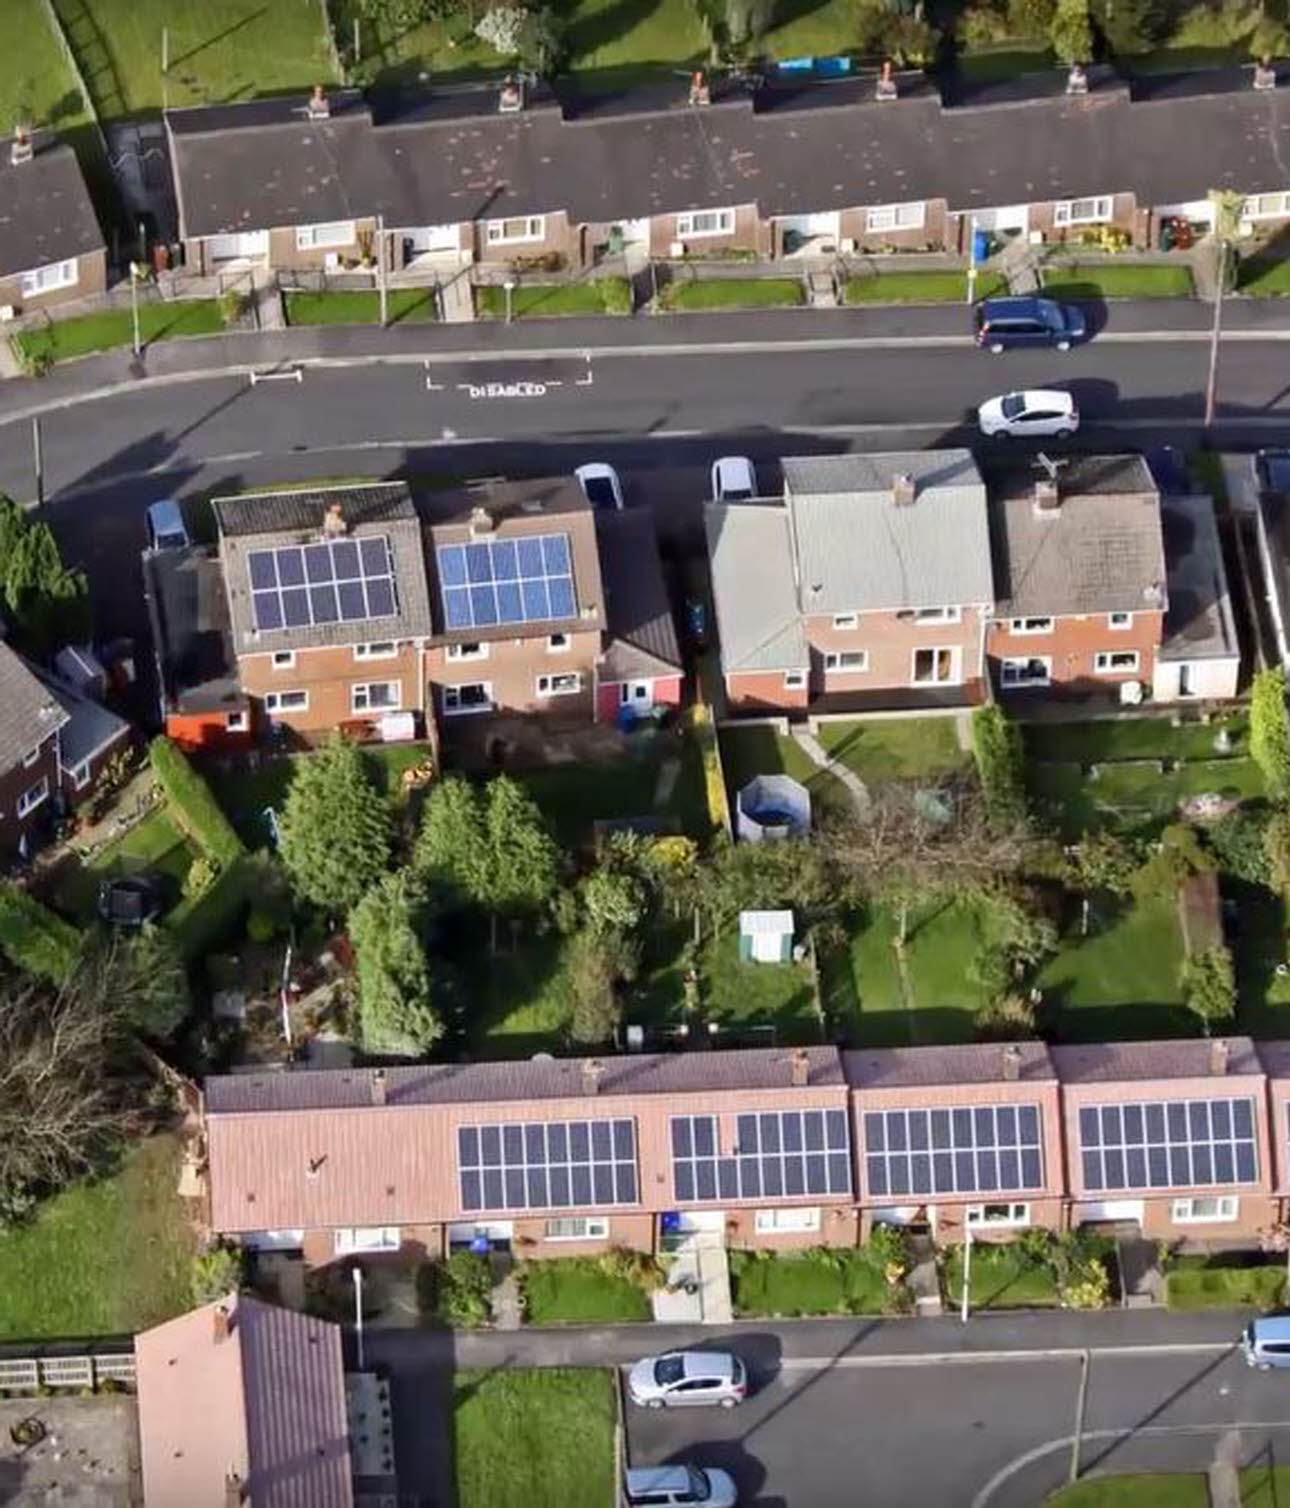 Streets of terraced houses, shot from above